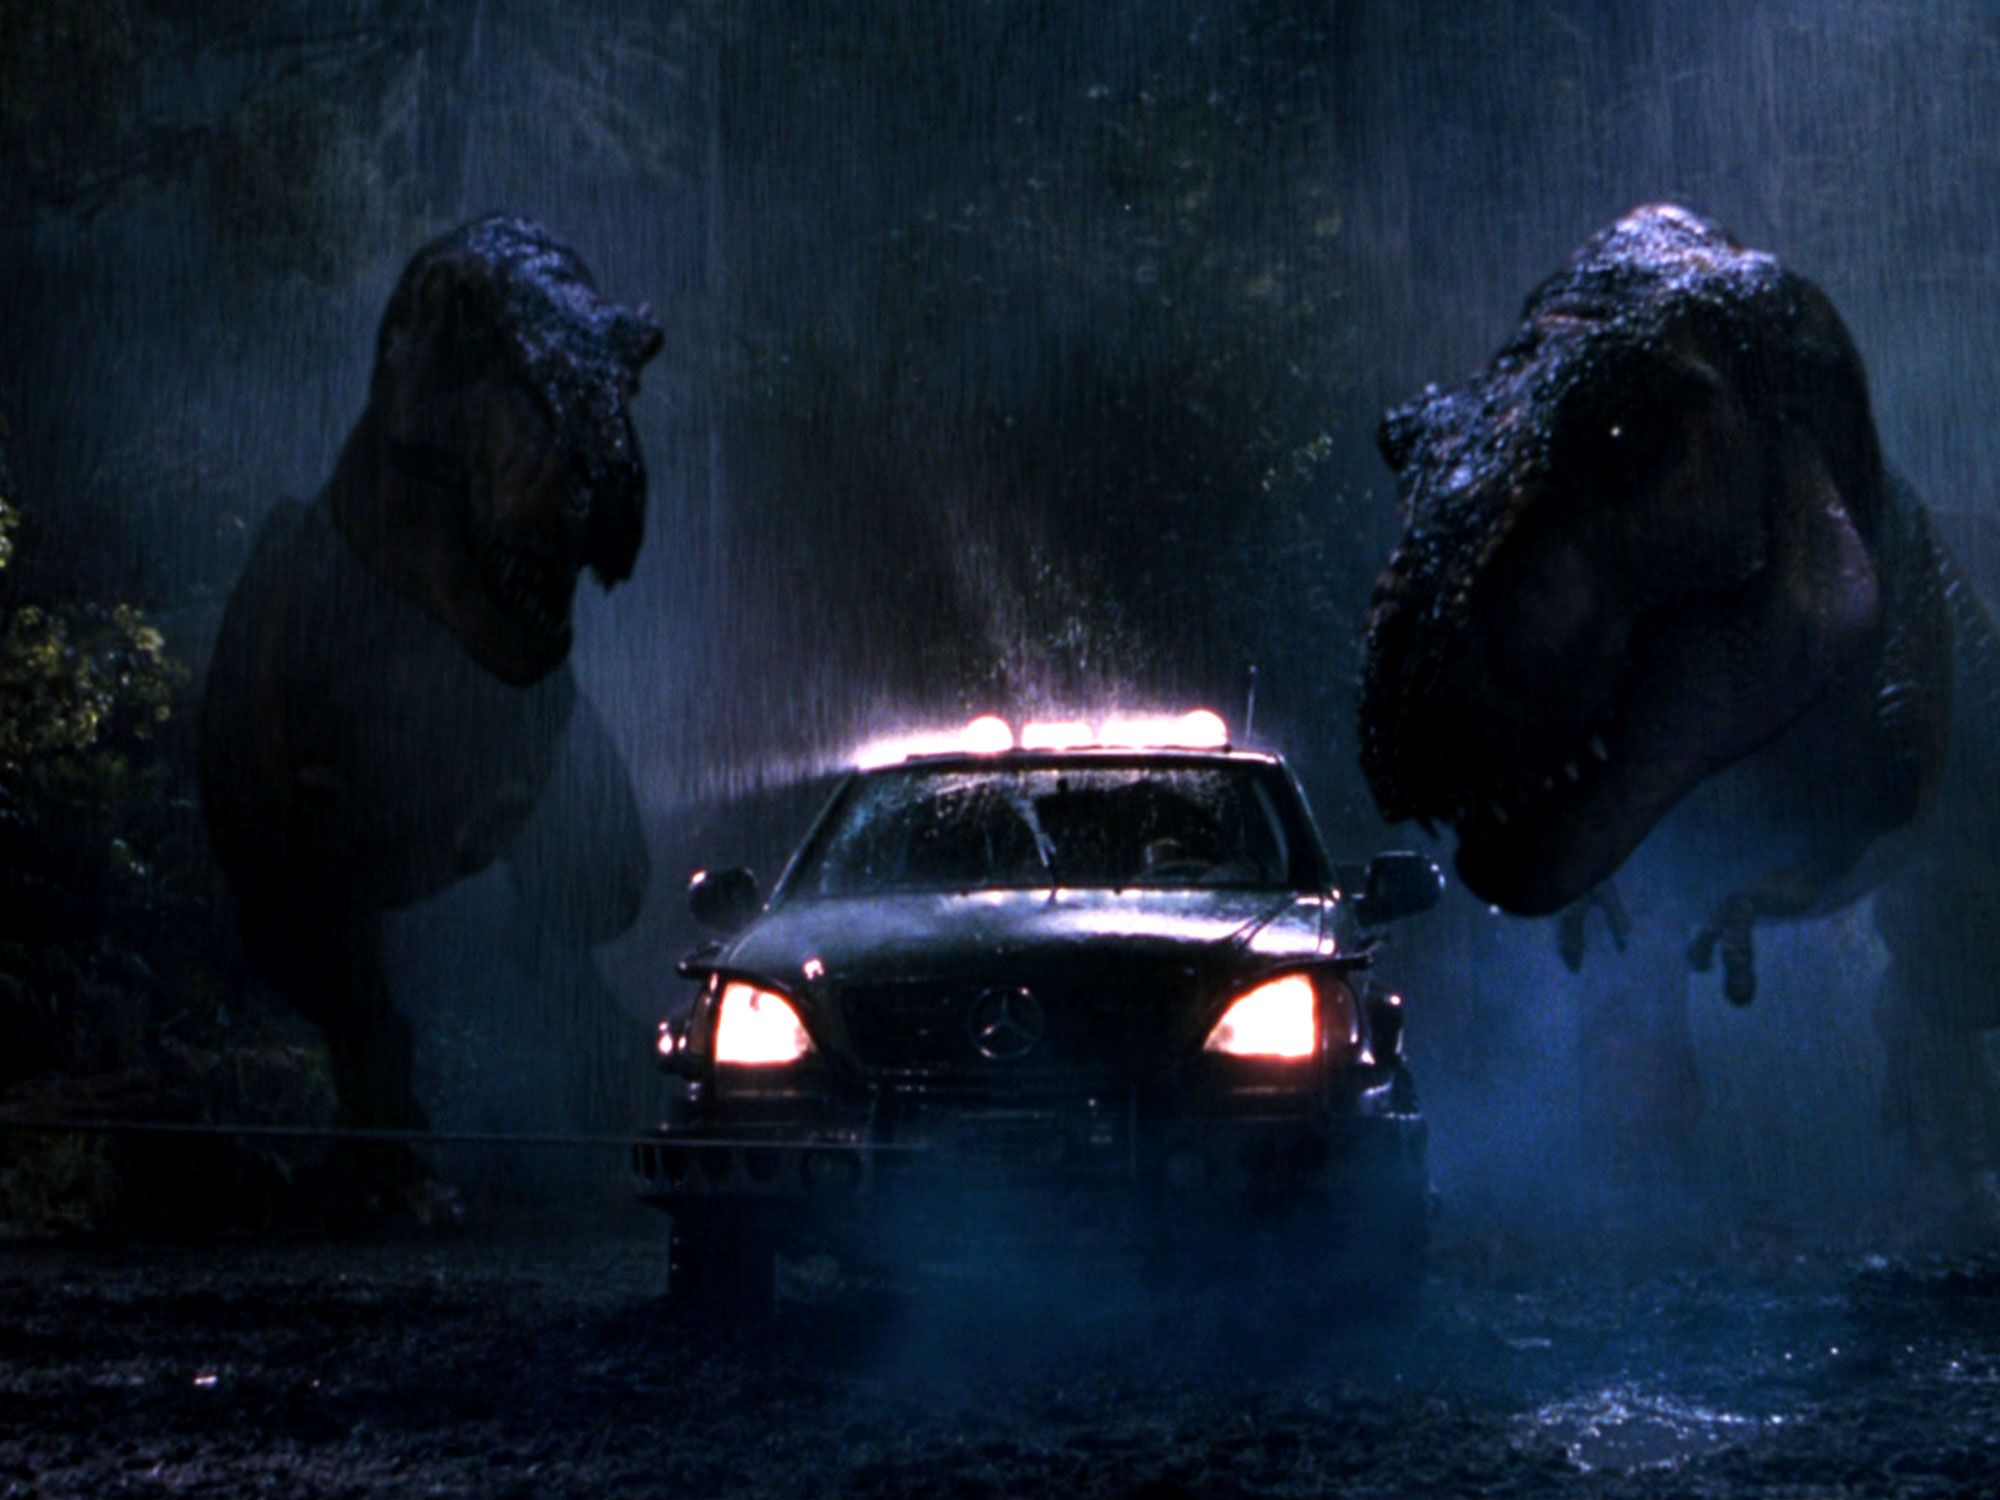 How The Lost World taught me that films can be cruel